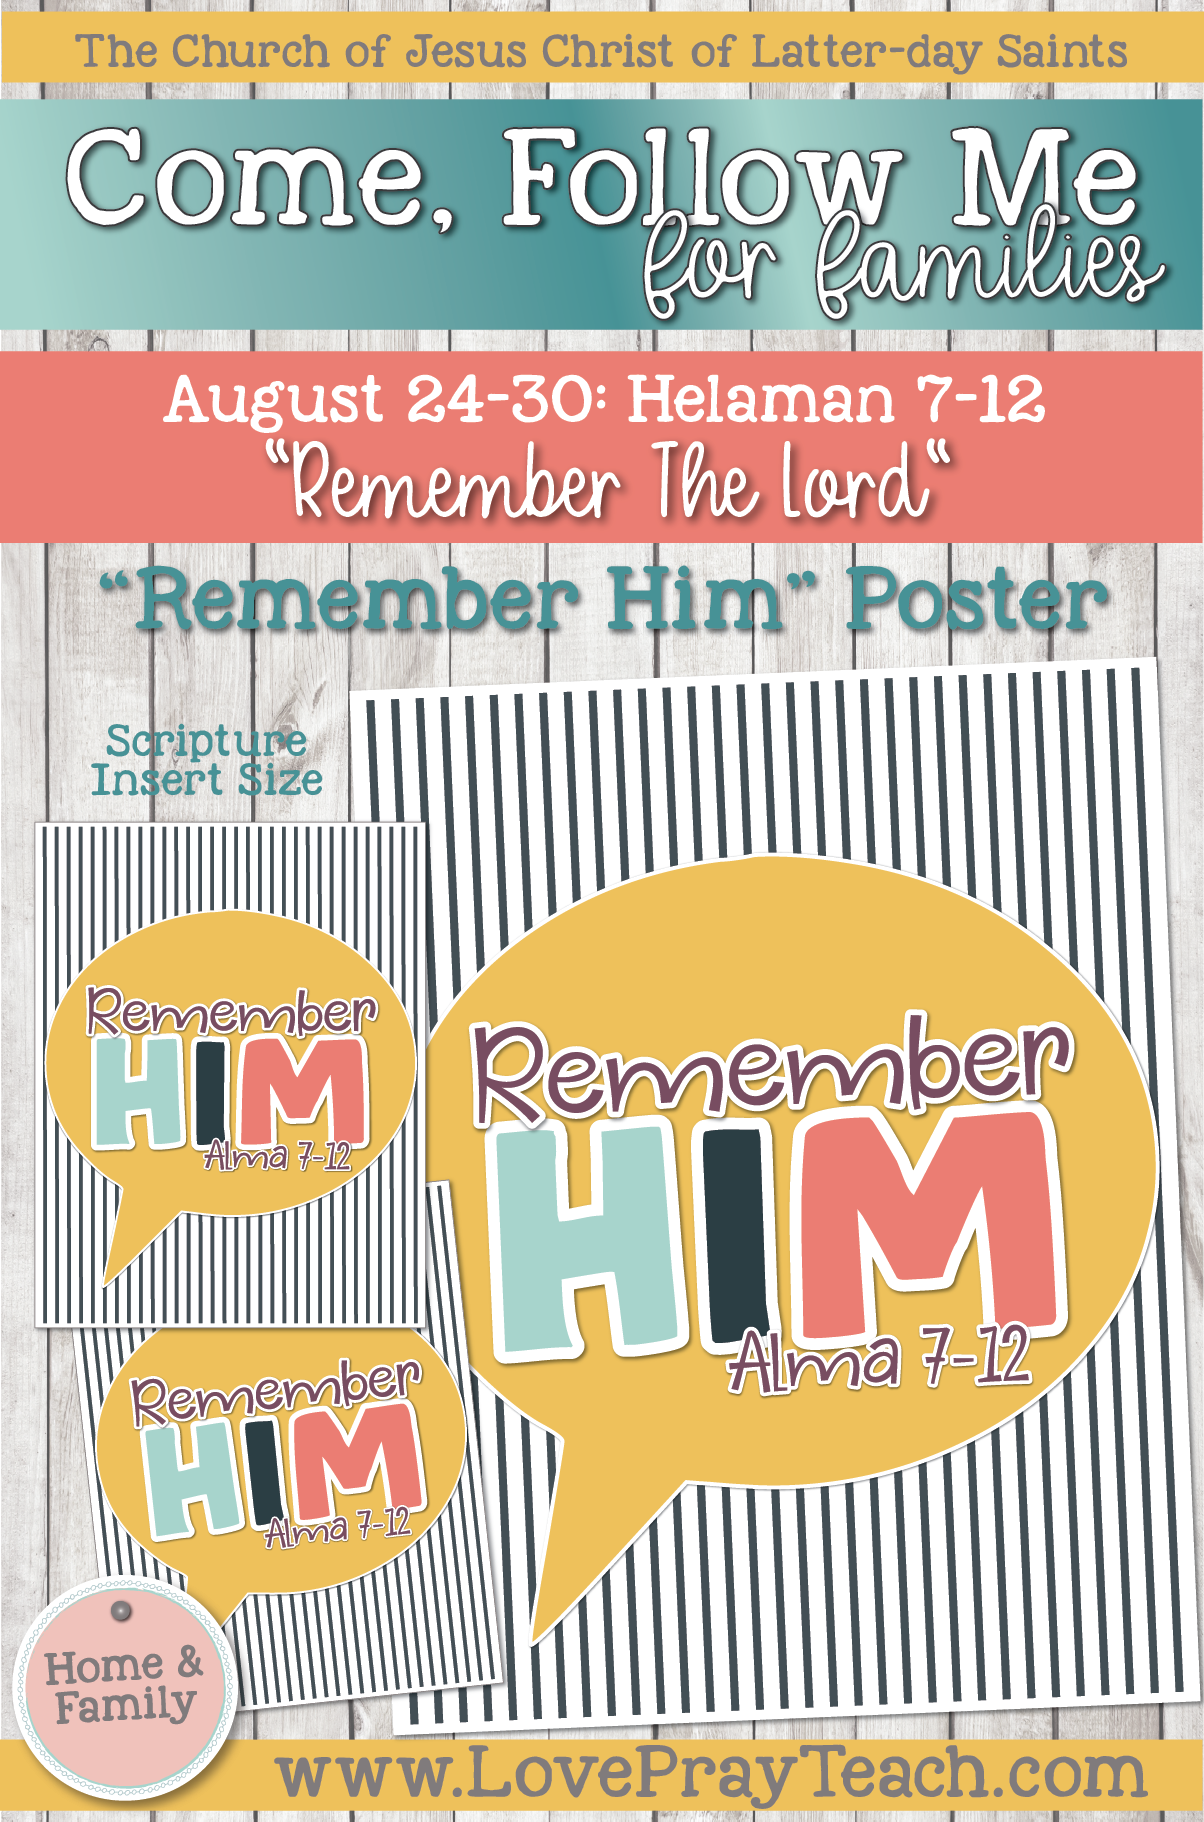 """Come, Follow Me—For Individuals and Families: Book of Mormon 2020 -August Week 5 - August 24-30 Helaman 7-12 """"Remember the Lord"""""""